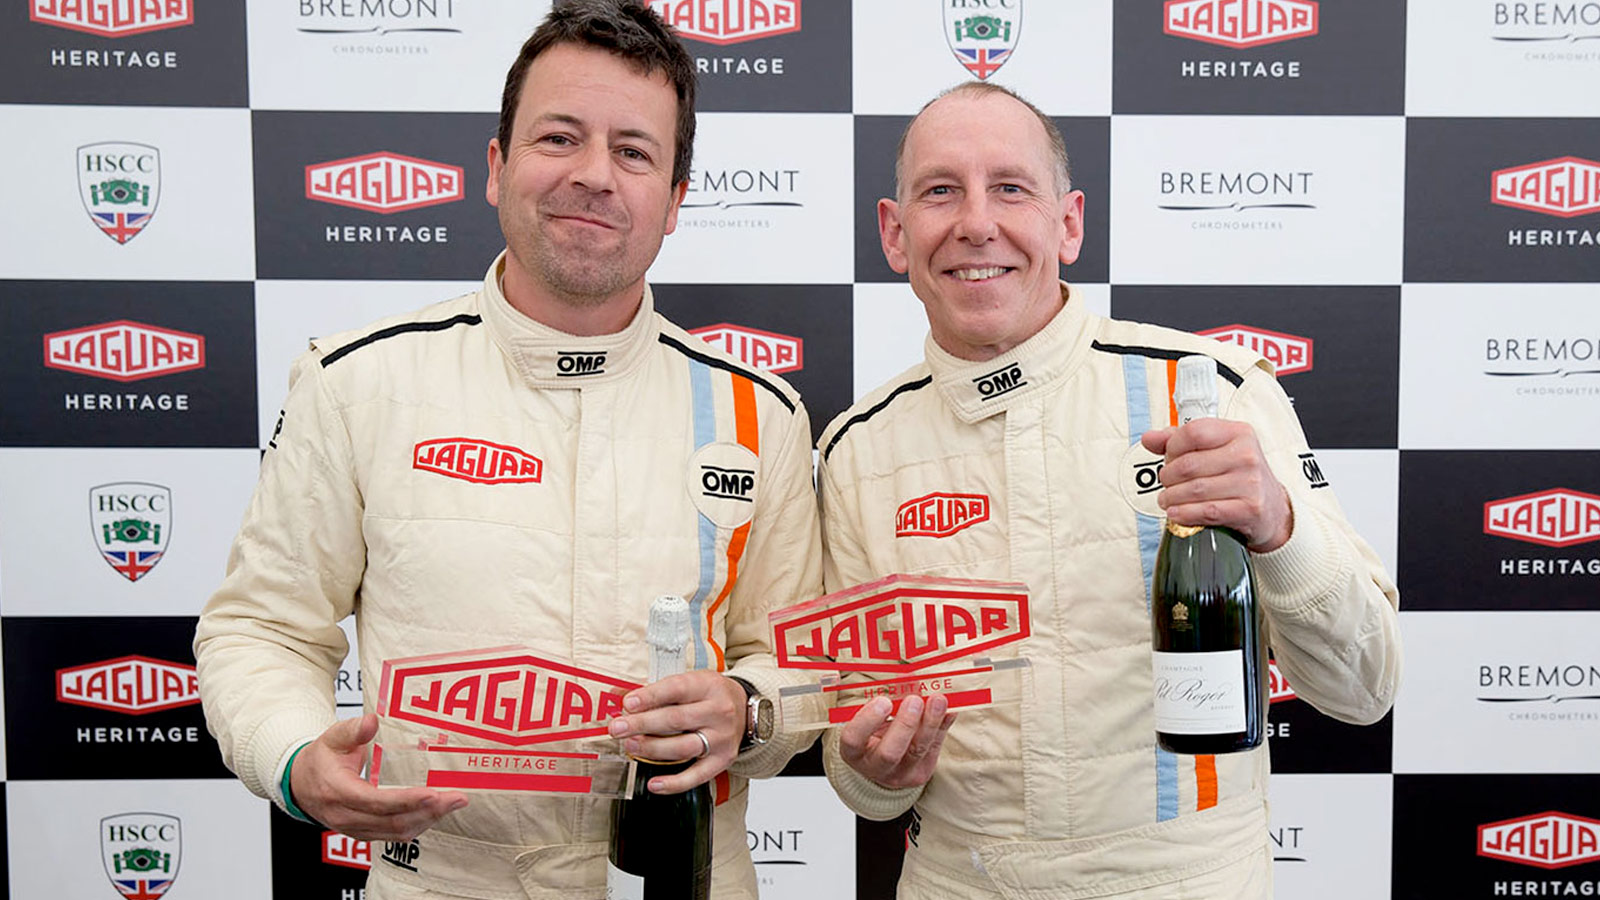 shot of two winners holding Jaguar trophies.